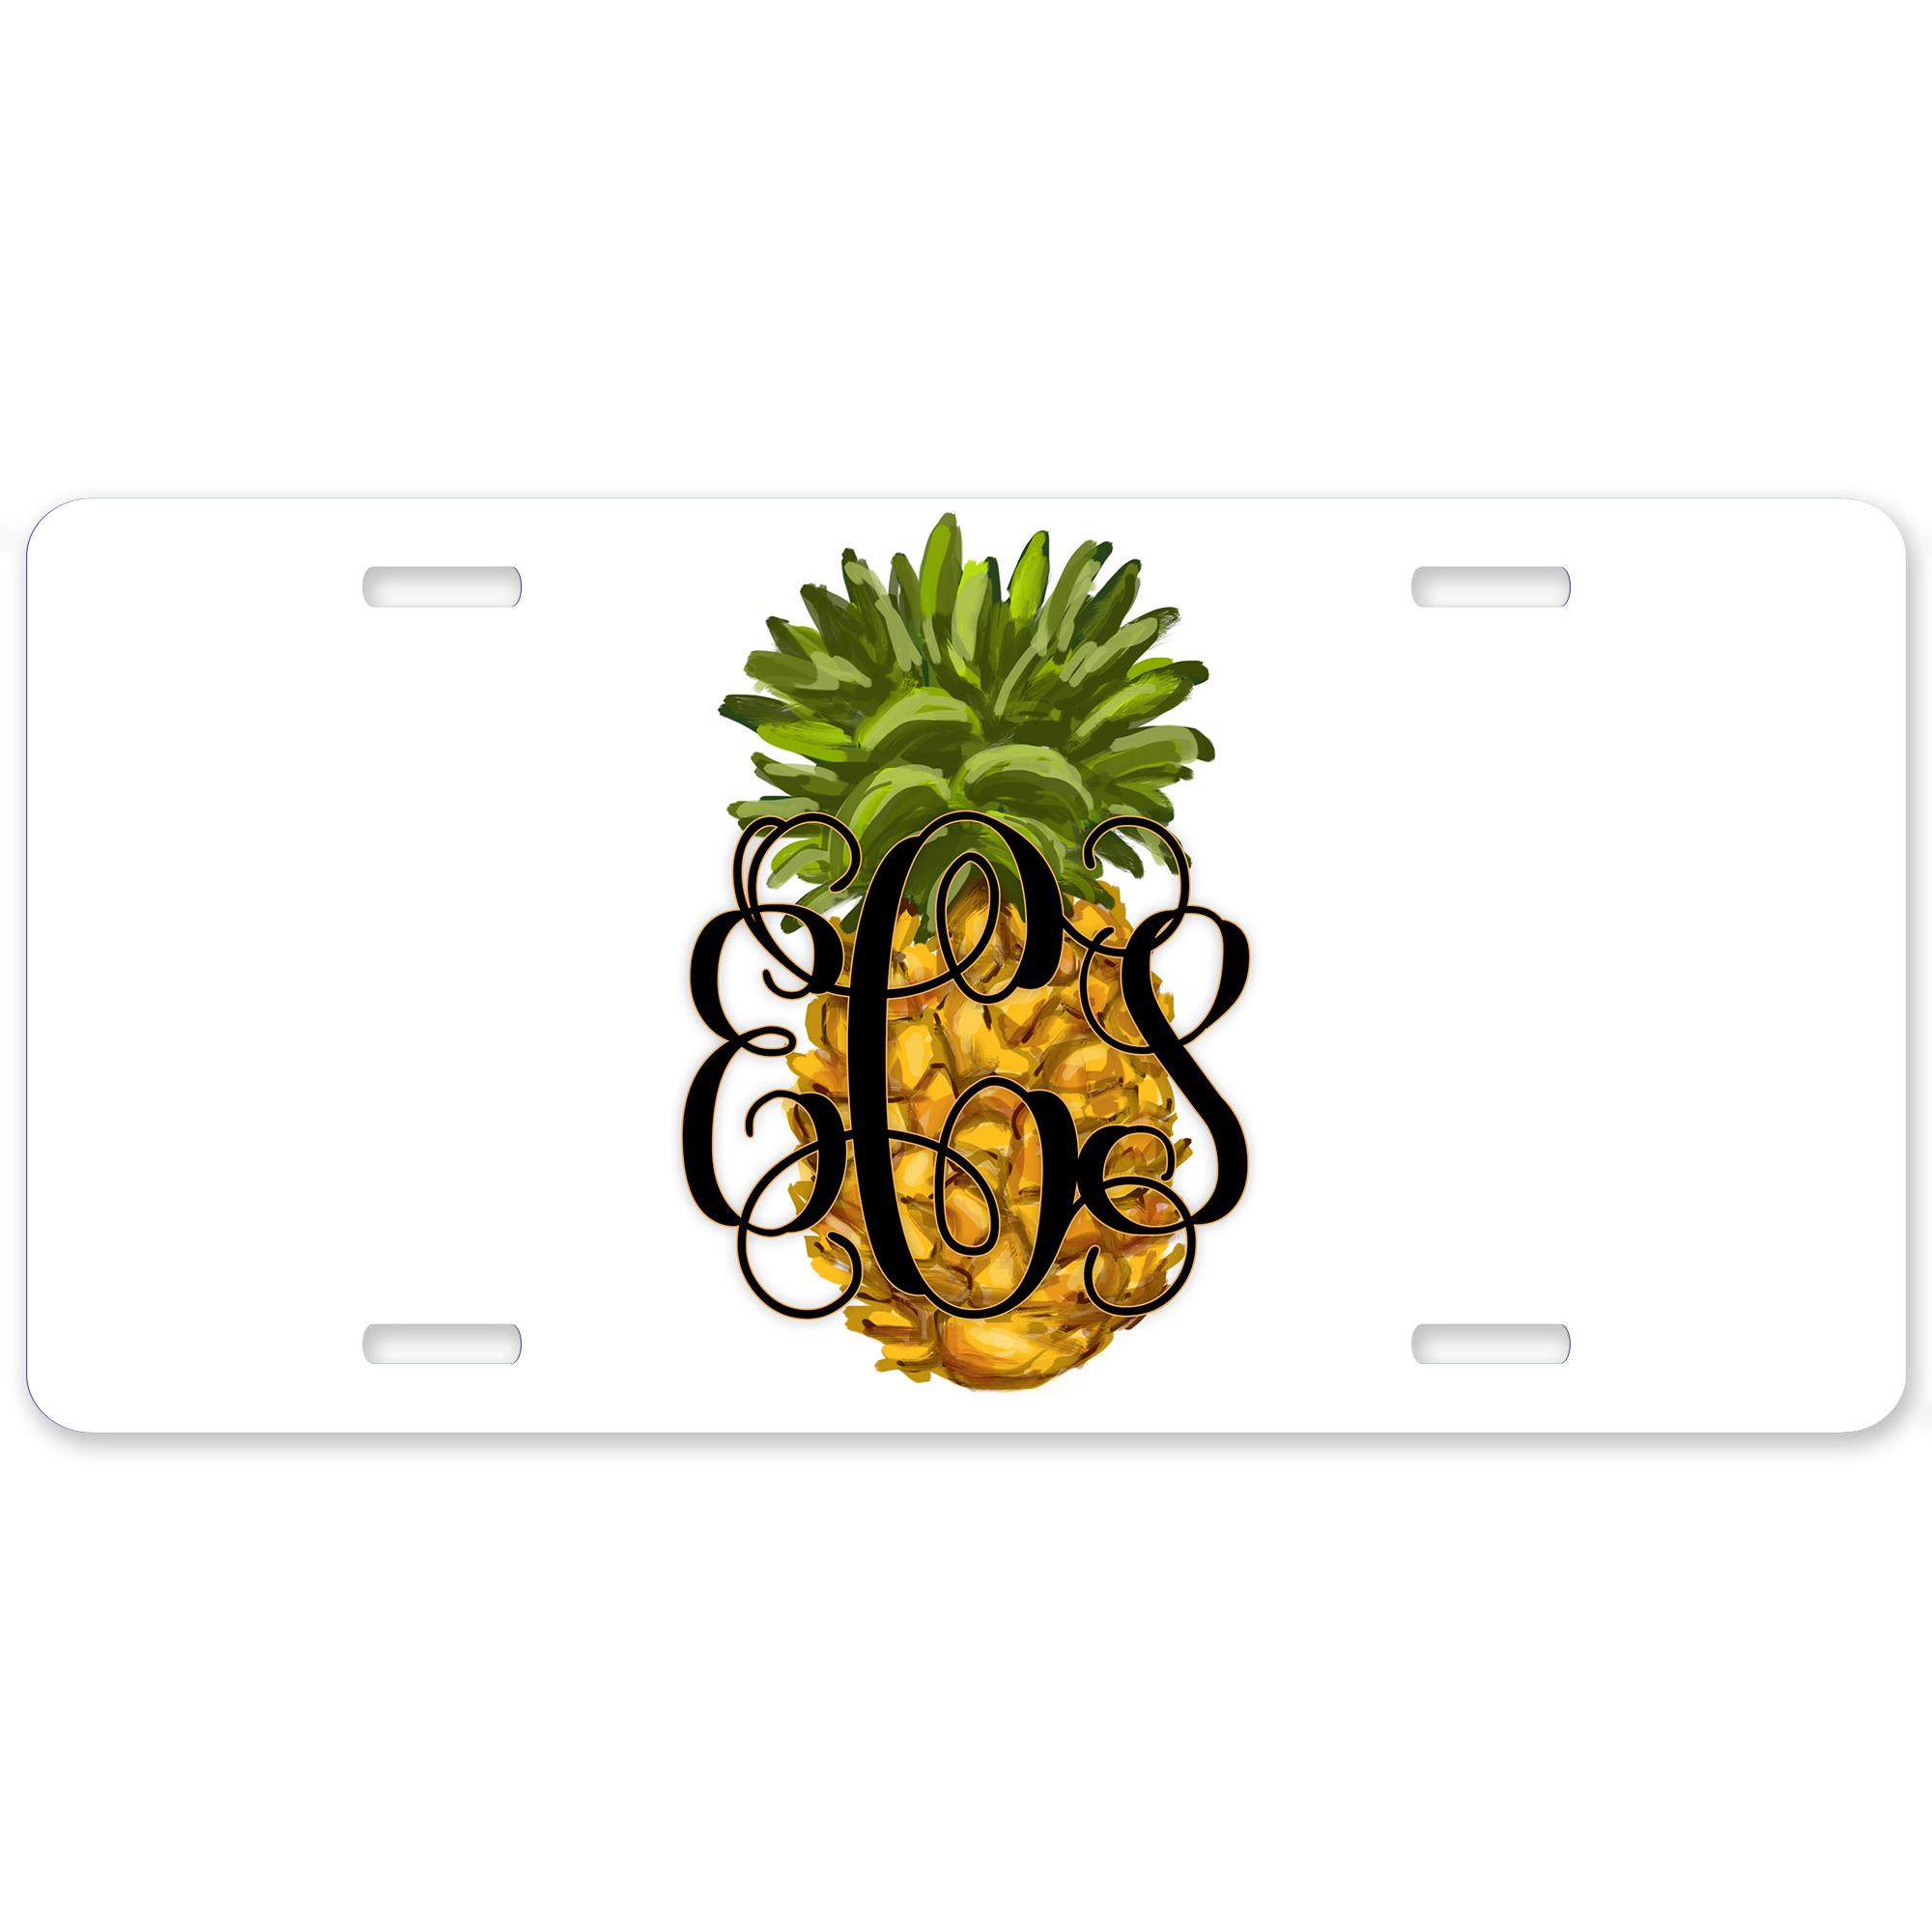 Pineapple Personalized Car Tag - Decorative License Plate Monogrammed License Plate  sc 1 st  Lime Rikee Designs & Pineapple Personalized Car Tag - Decorative License Plate ...